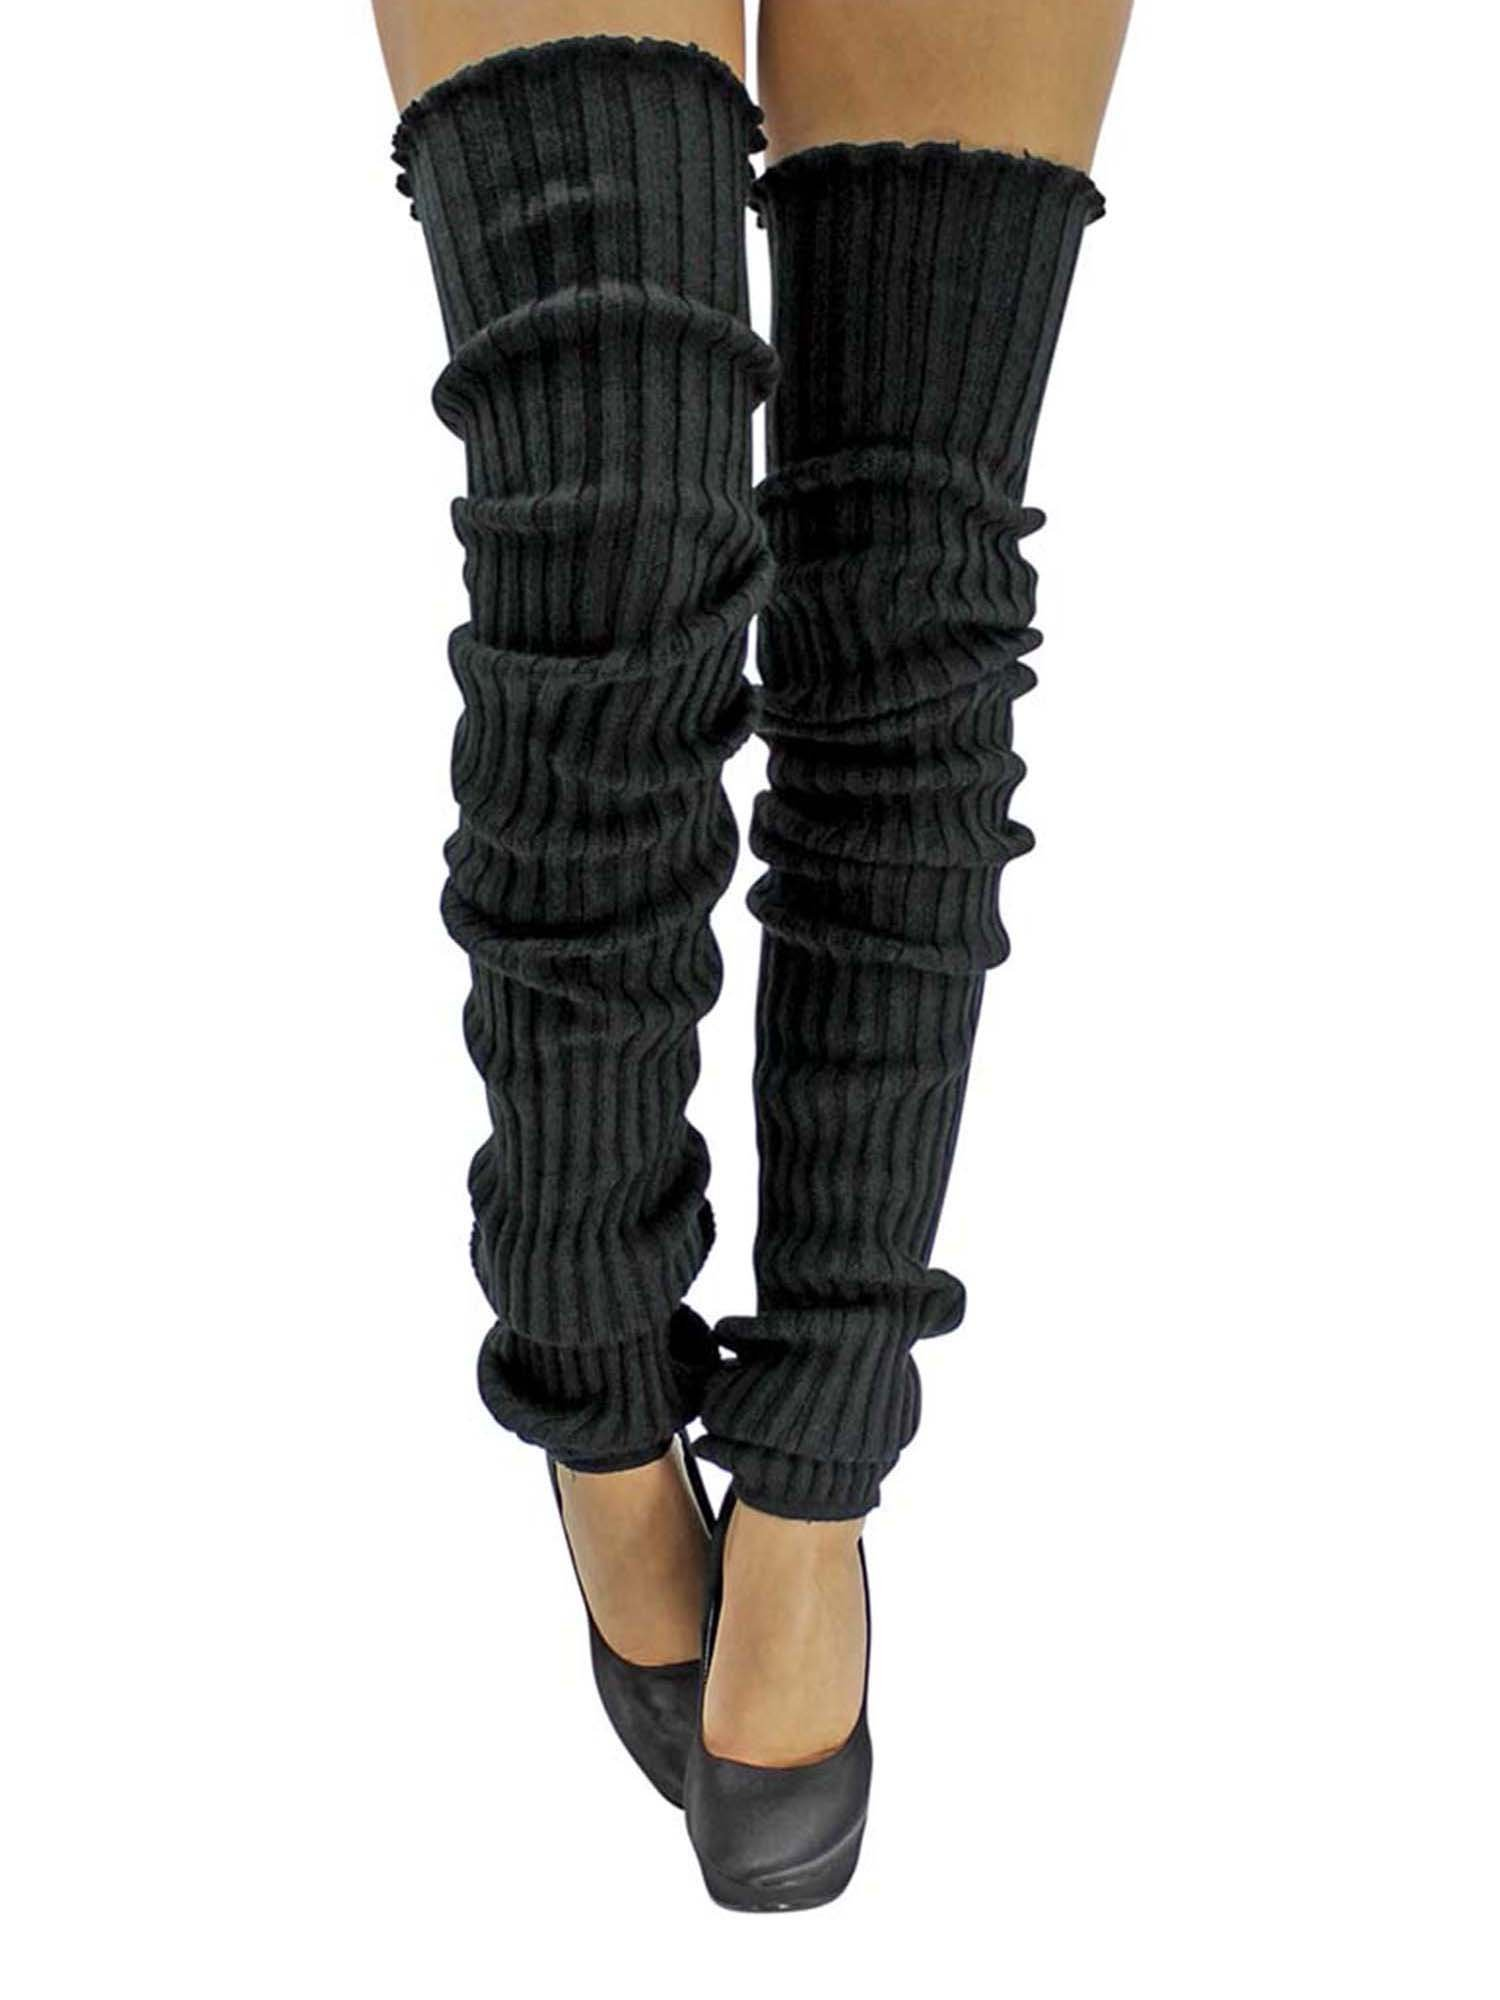 Black Slouchy Thigh High Knit Dance Leg Warmers